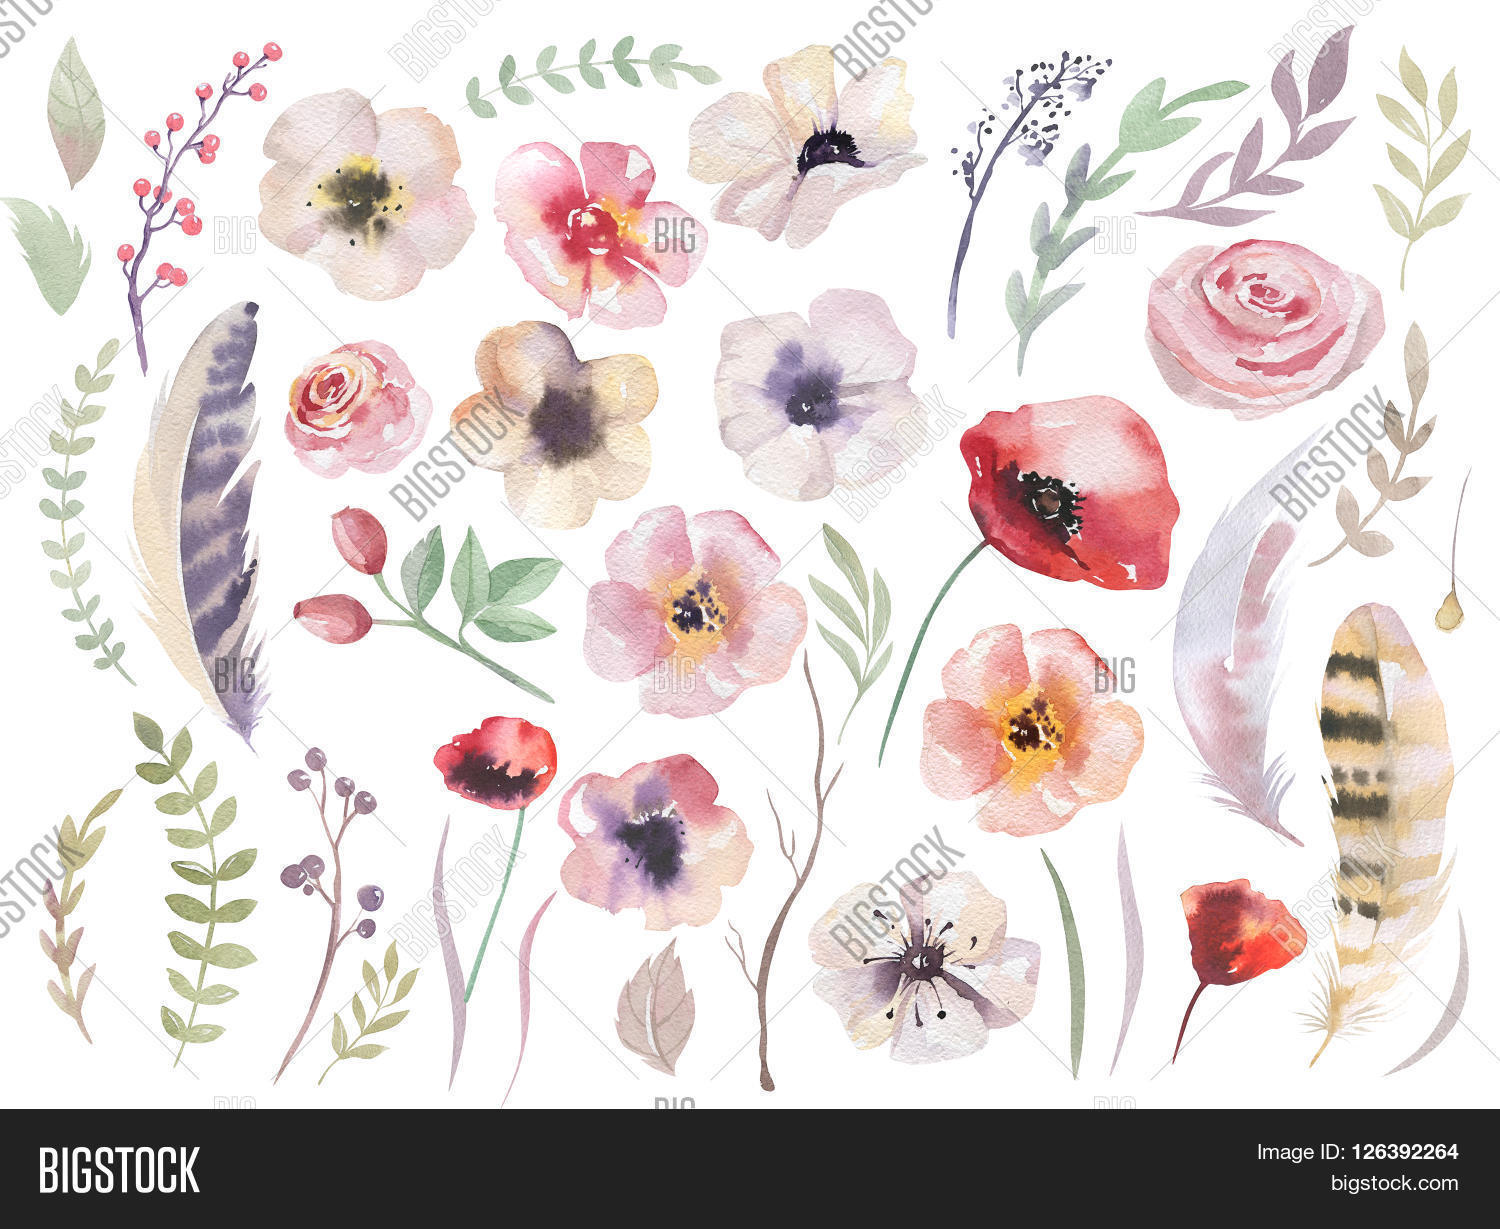 Watercolour Boho Flower Set. Image & Photo | Bigstock